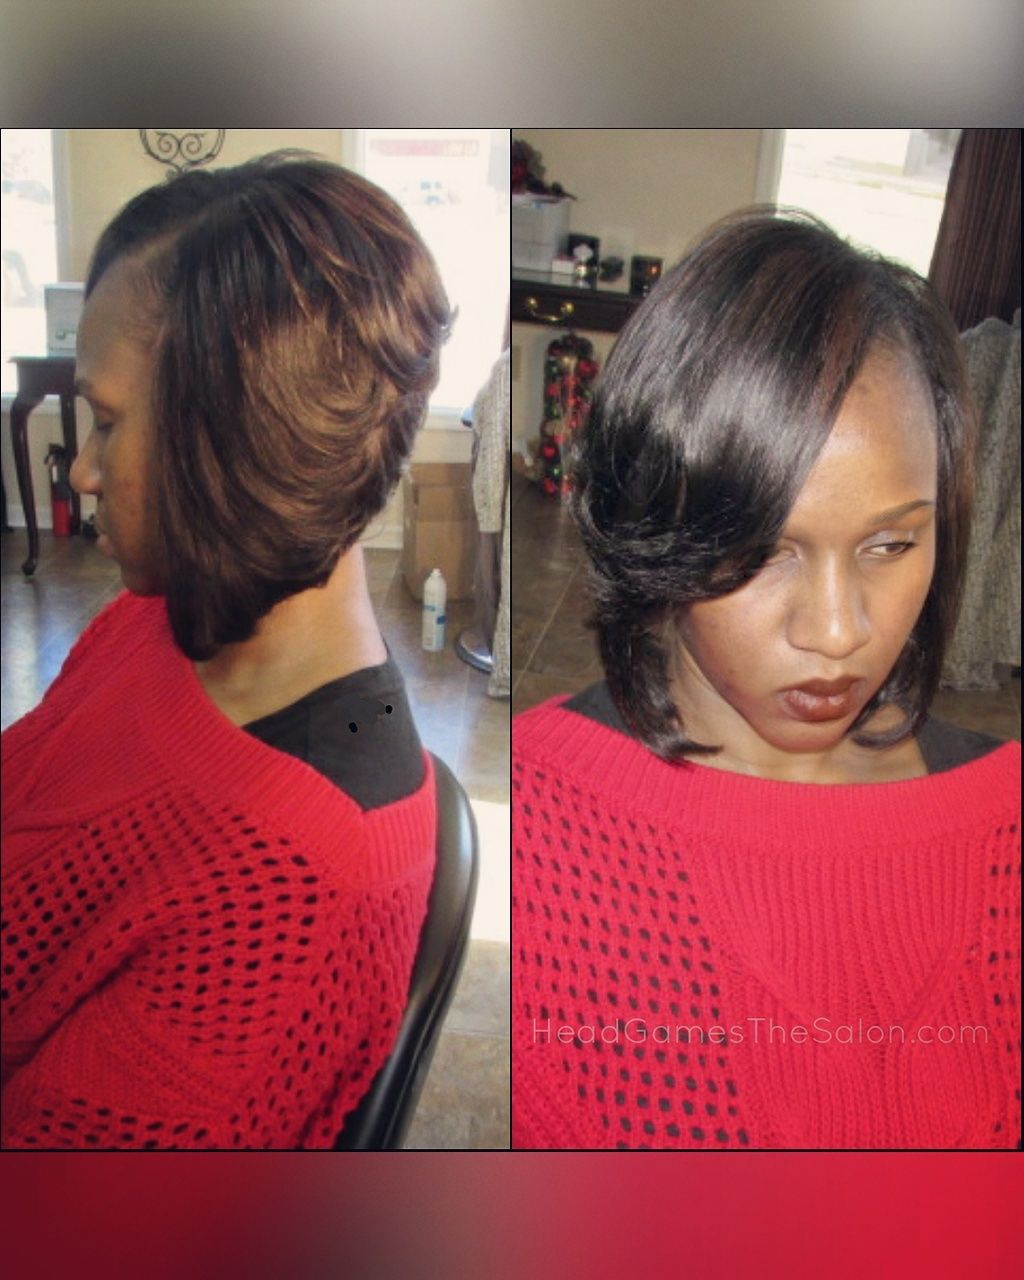 Hair Mob Member Photos Collections Friday October 19 2018